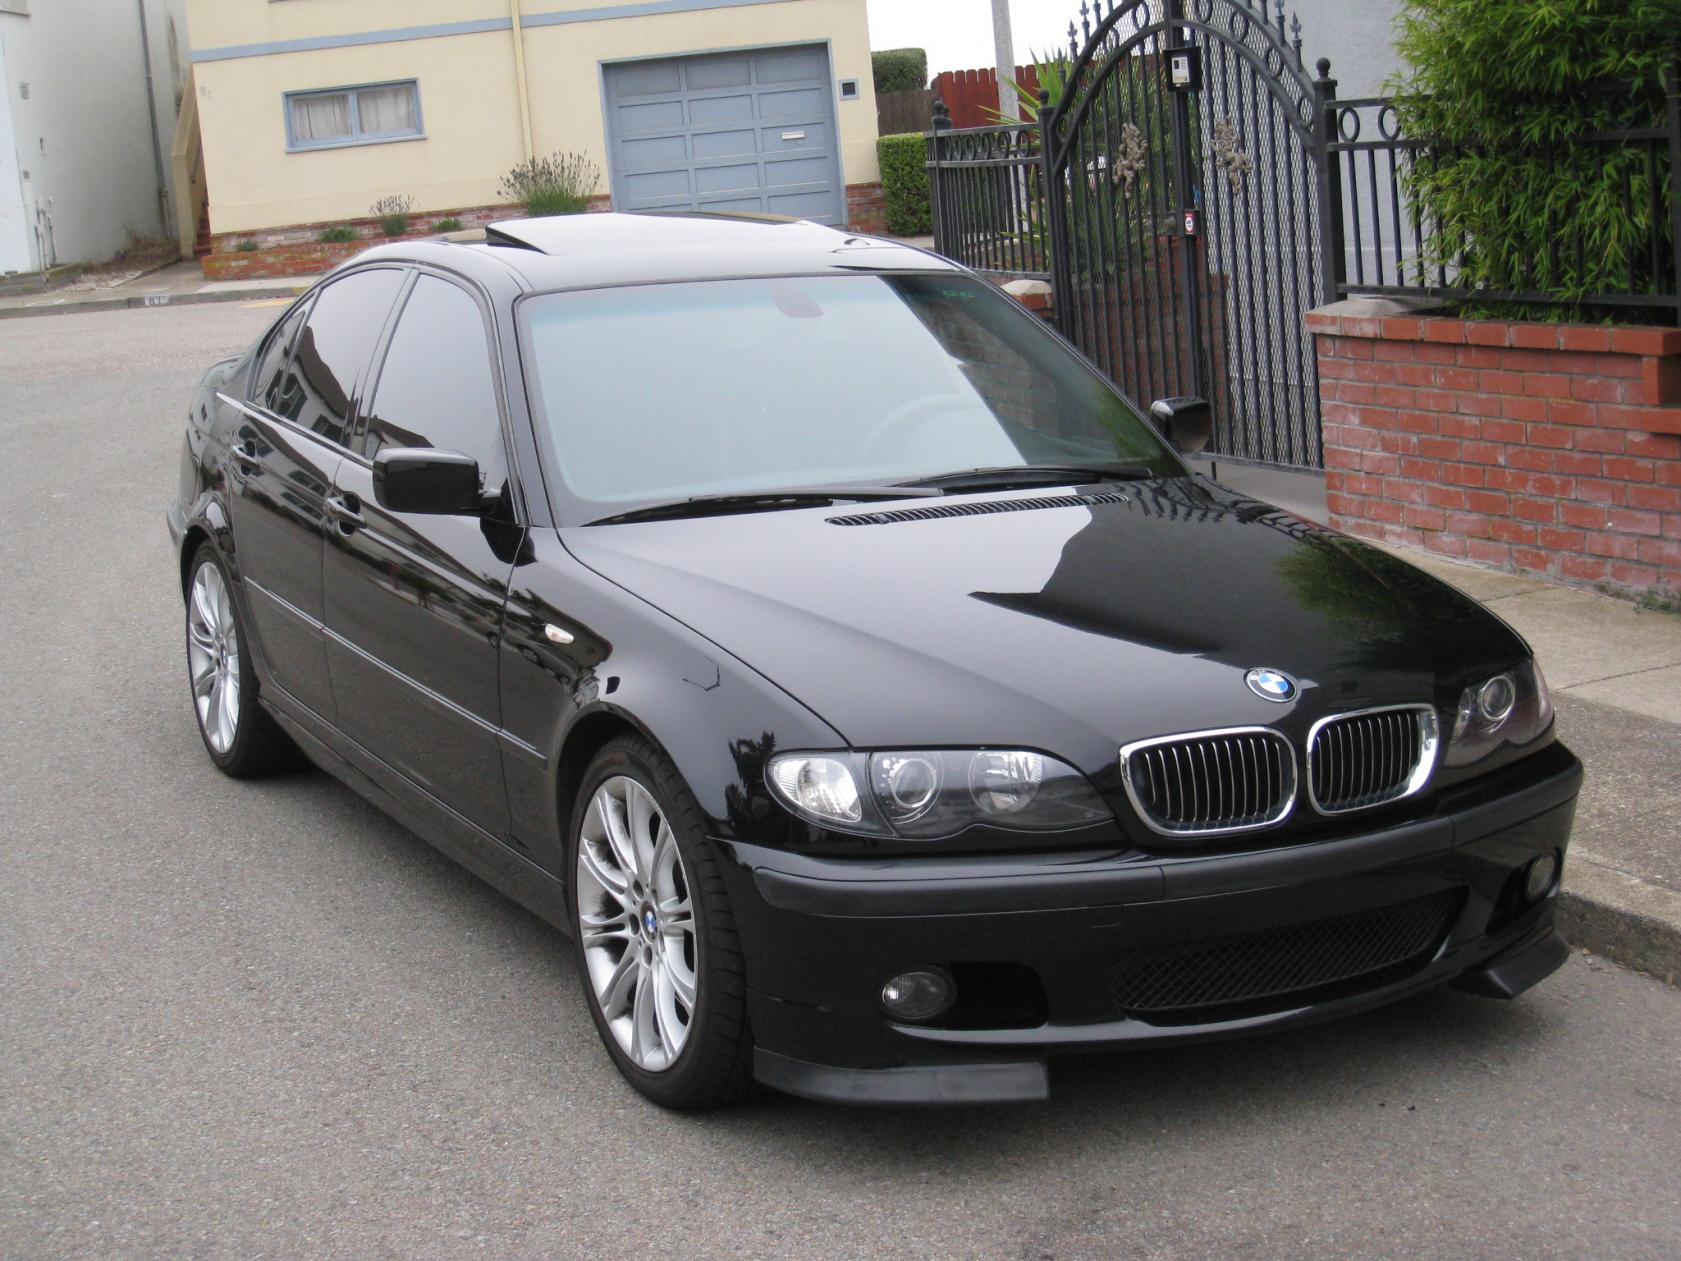 FS: 2005 BMW 330i ZHP Performance Edition - JET BLACK - 6SPD - San ...